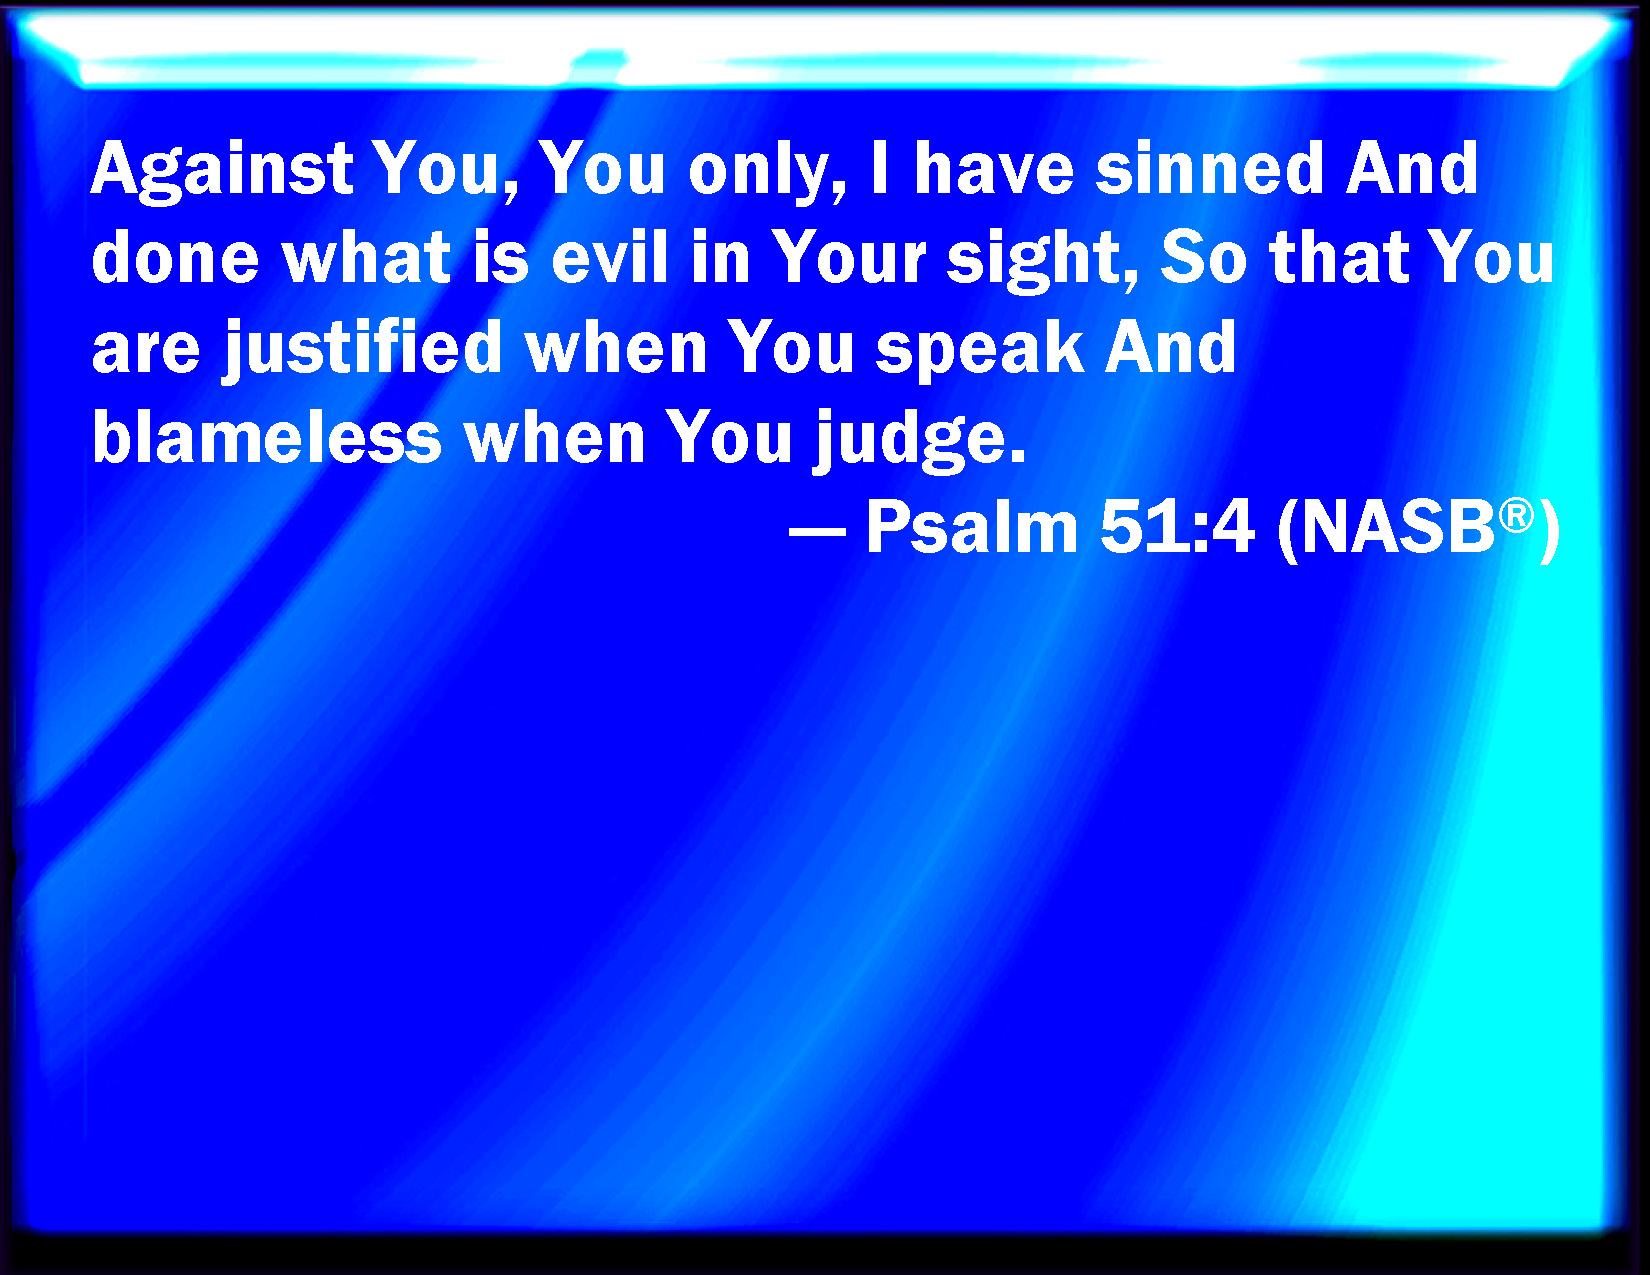 bible verse powerpoint slides for psalm 51 4